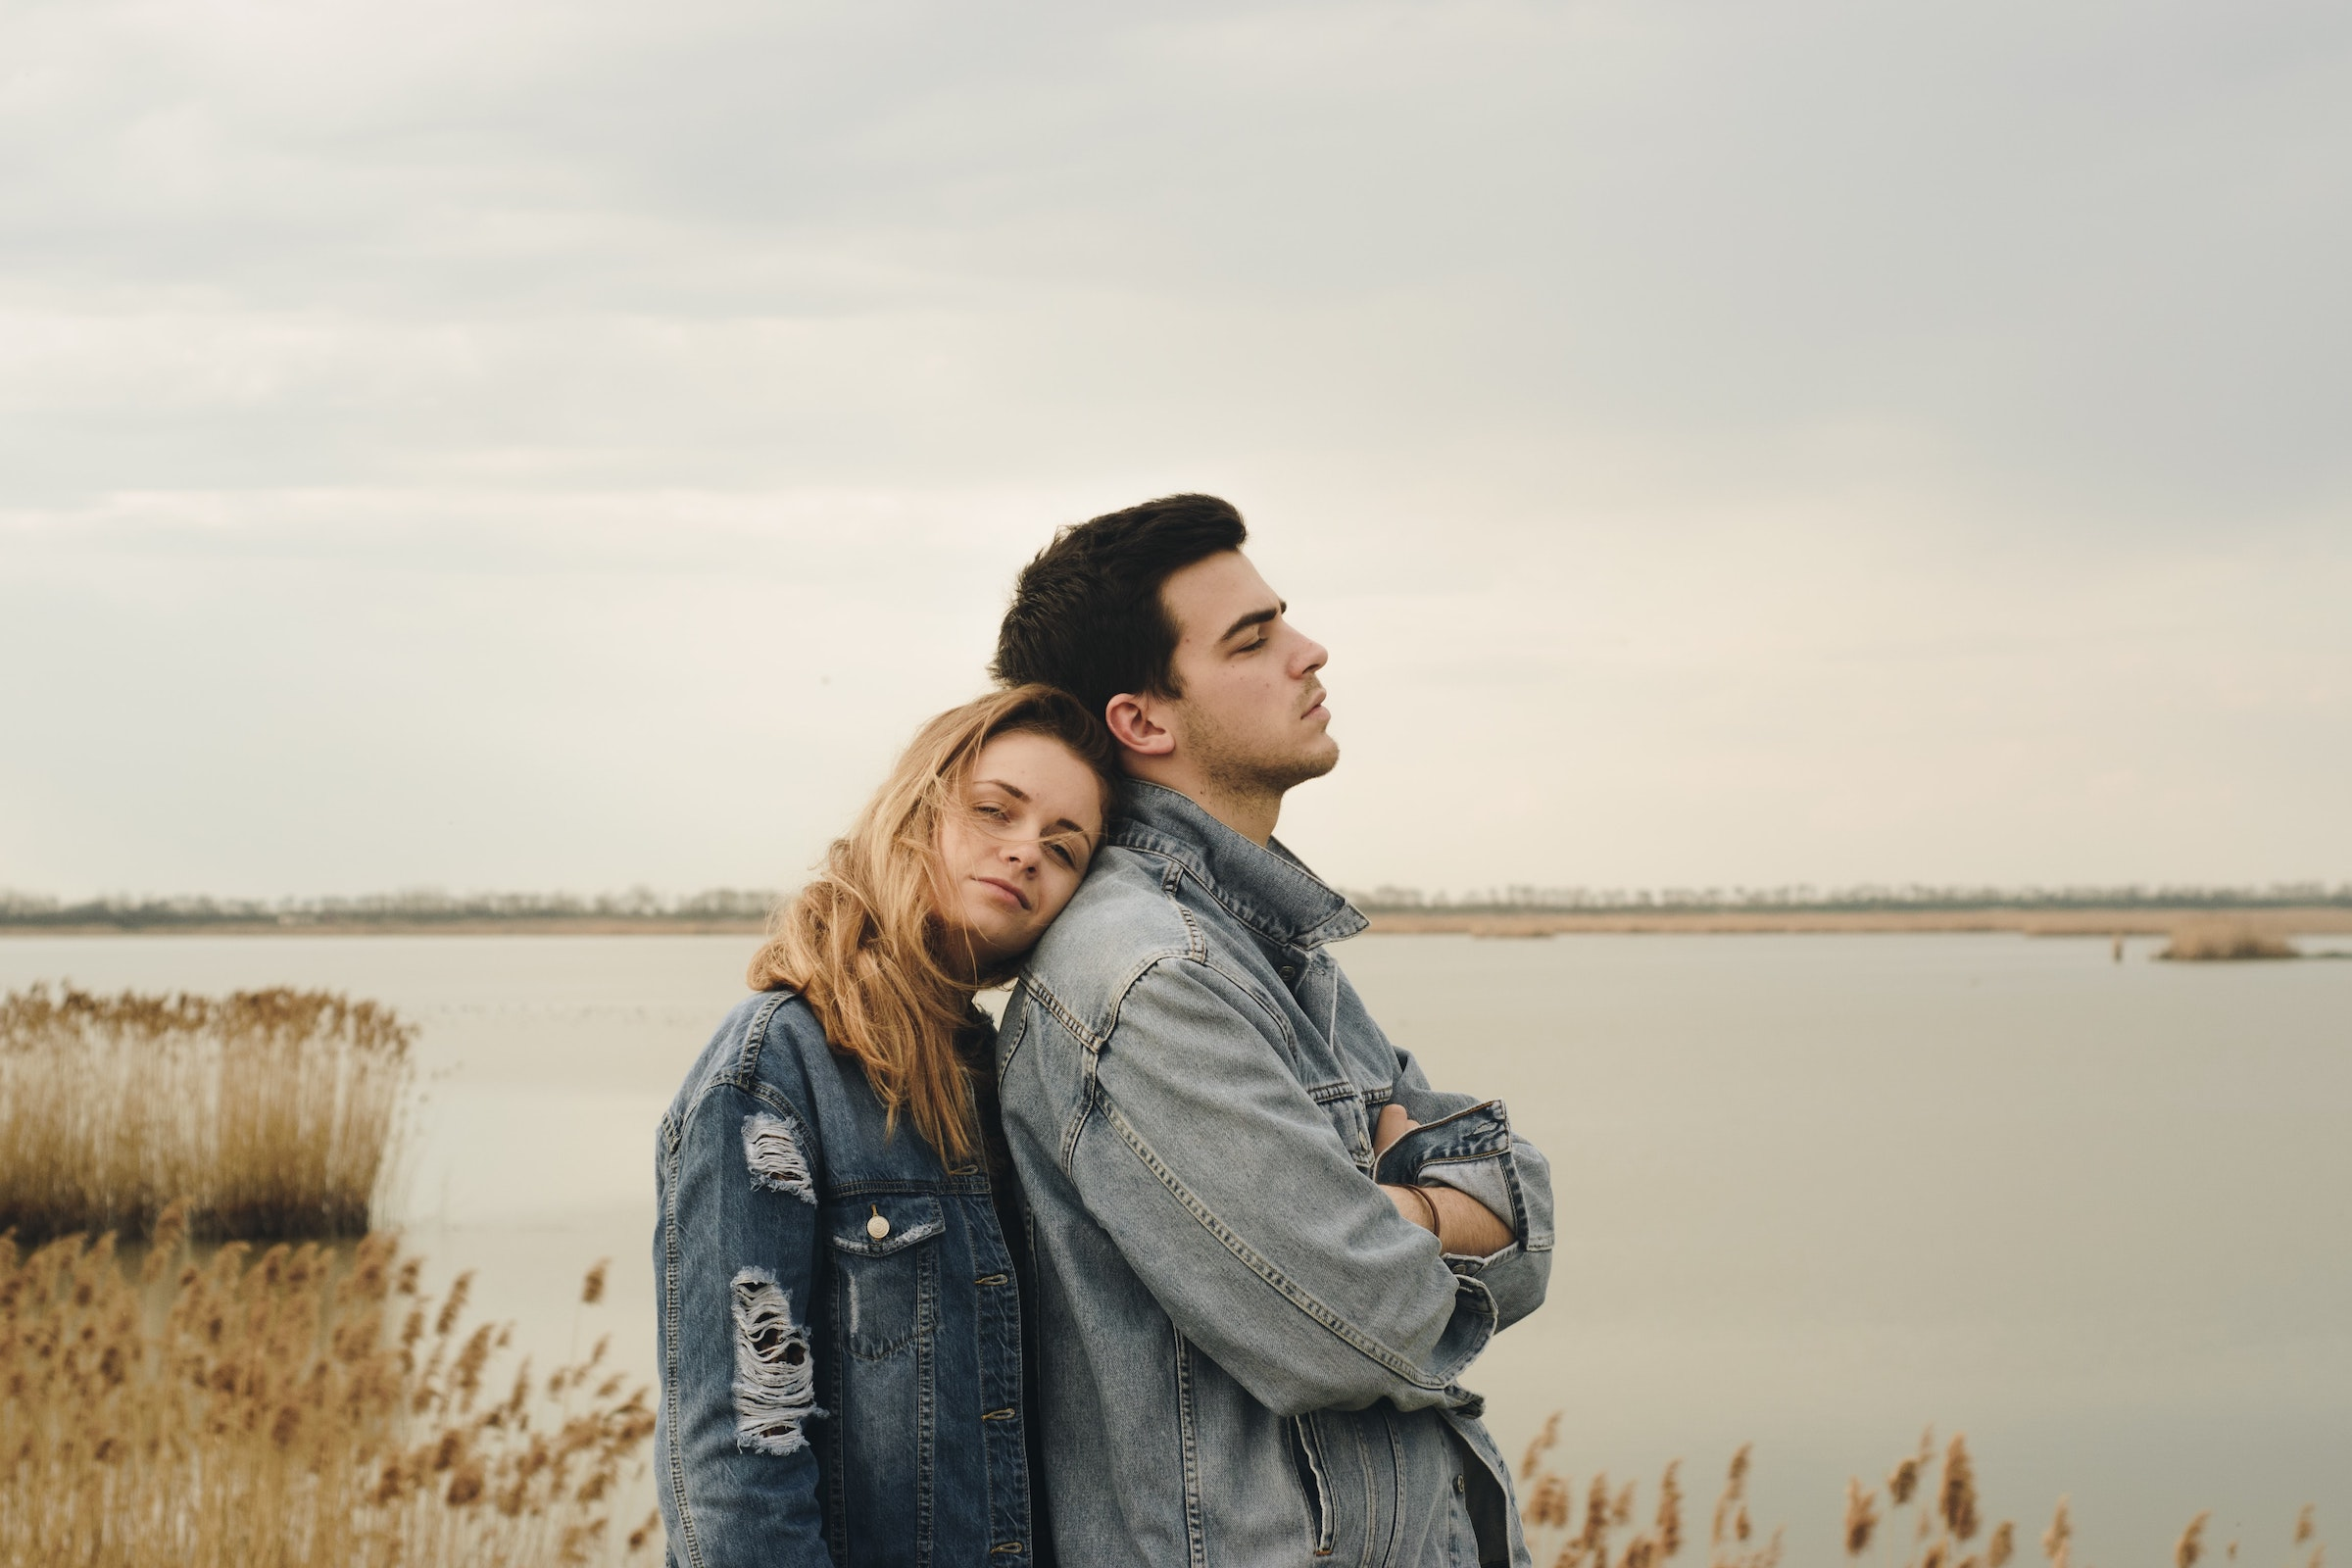 Does Your Partner Have An Addiction? Couples Therapy May Help.